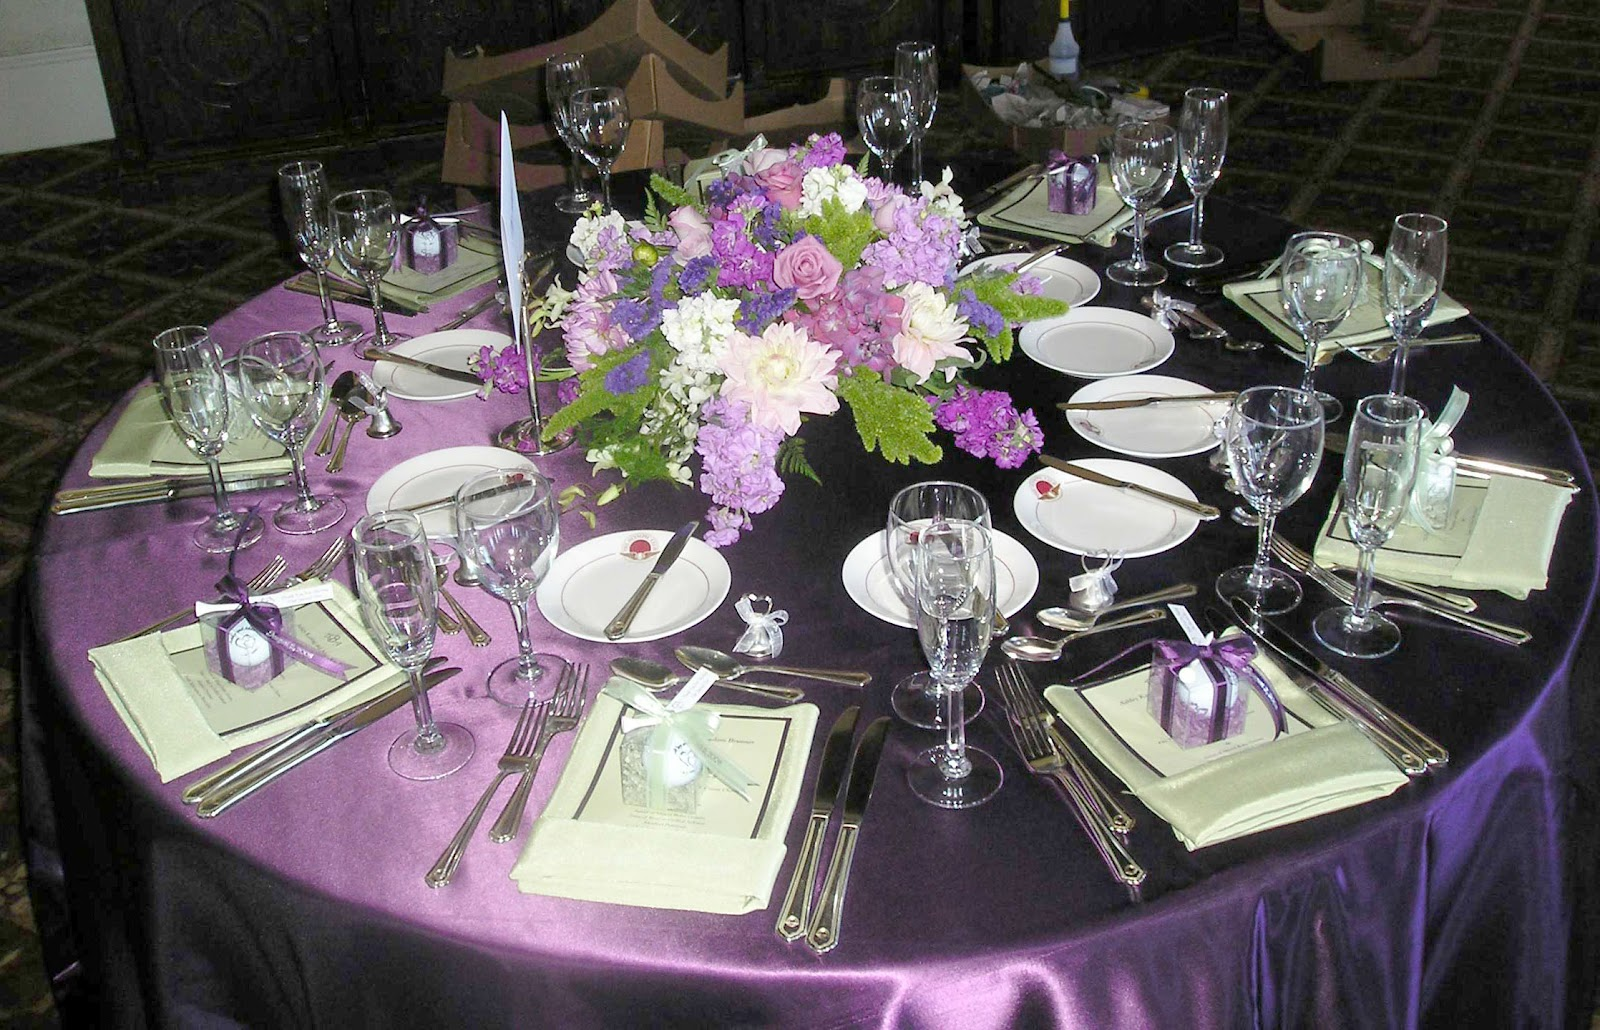 Wedding Reception Table Decorations Ideas silver wedding themes silver wedding themes weddings romantique Great Atmosphere With Table Decorations For Wedding Receptions